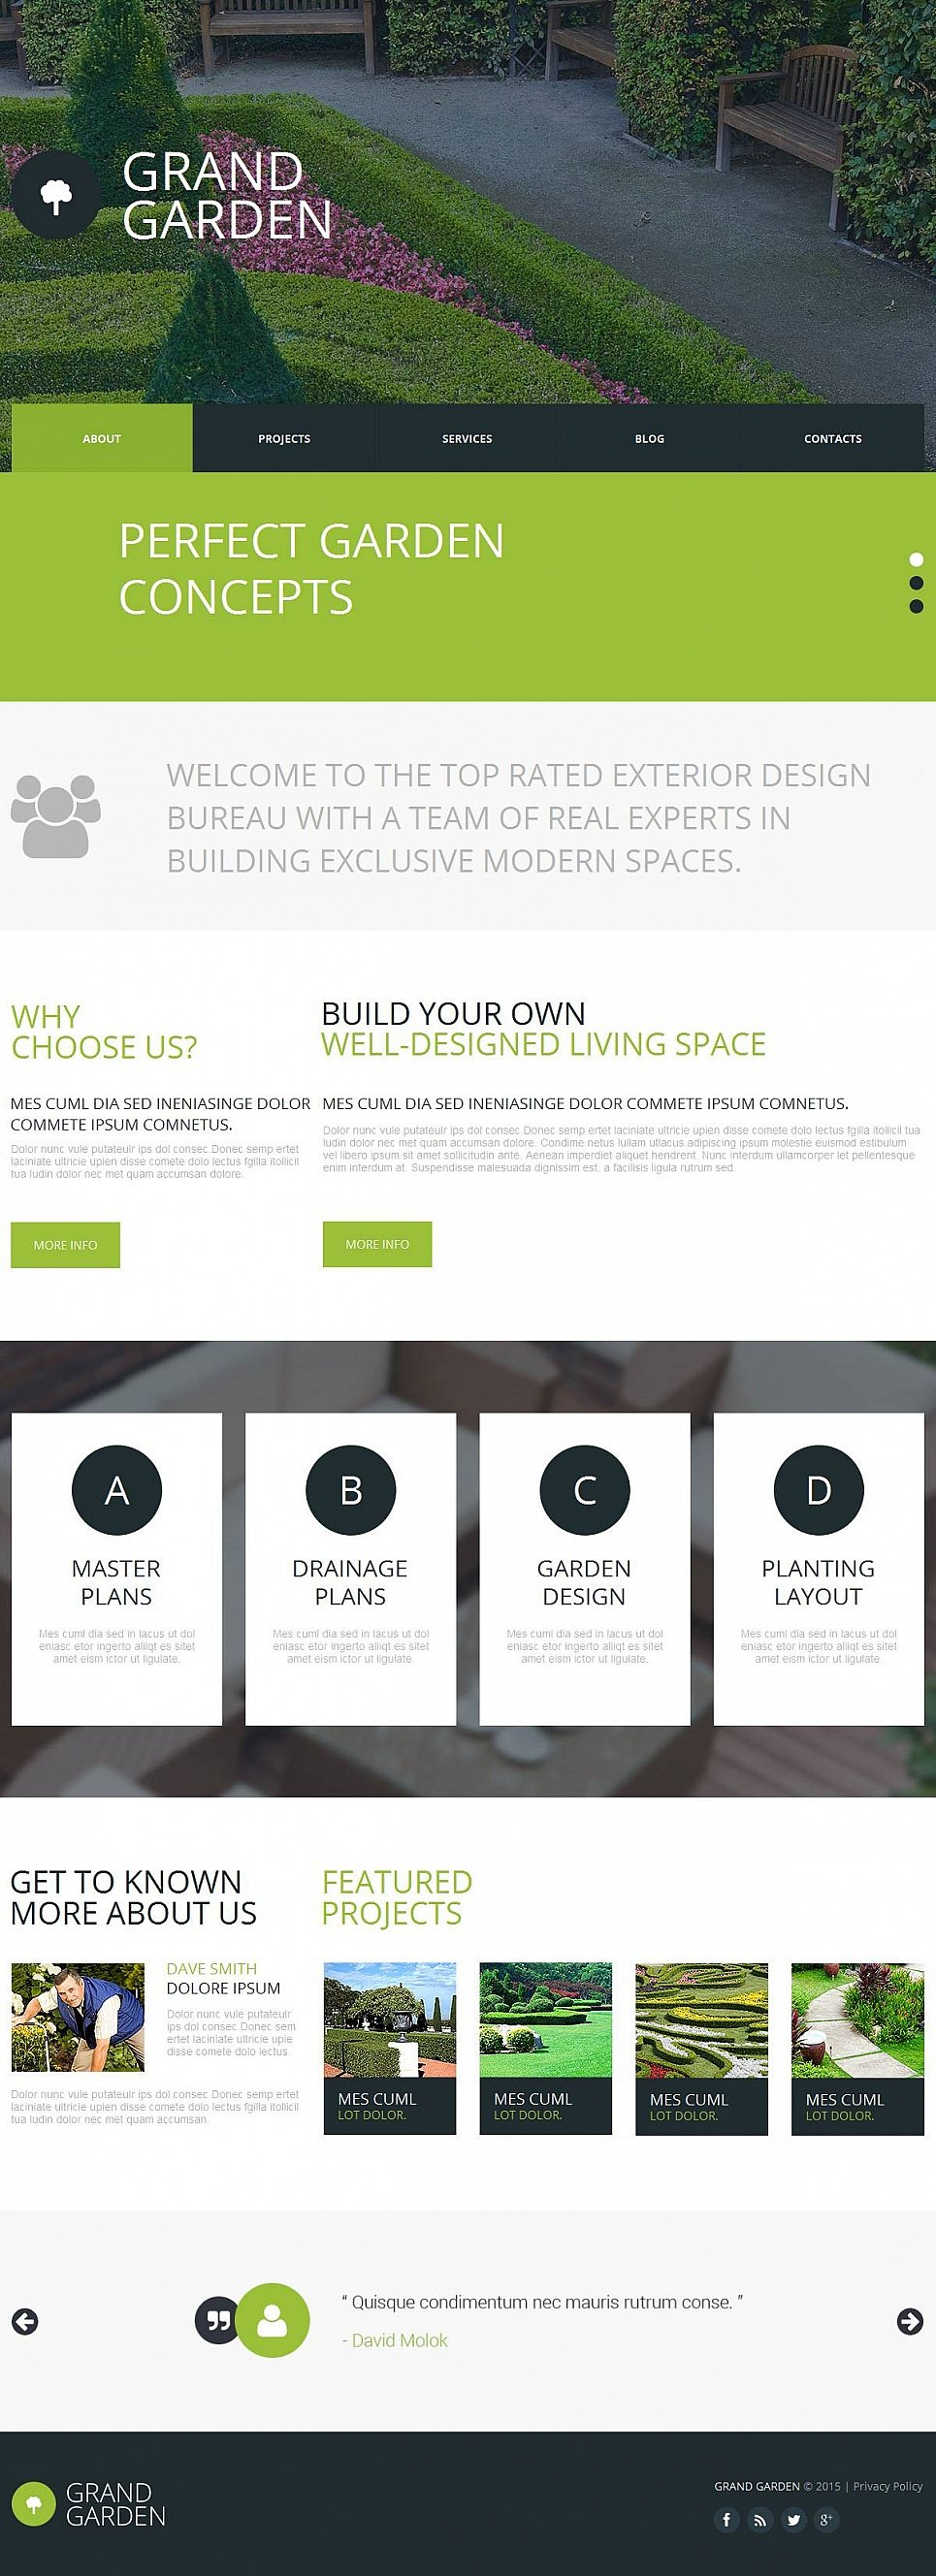 Garden Website Template with a Photo Slider - image